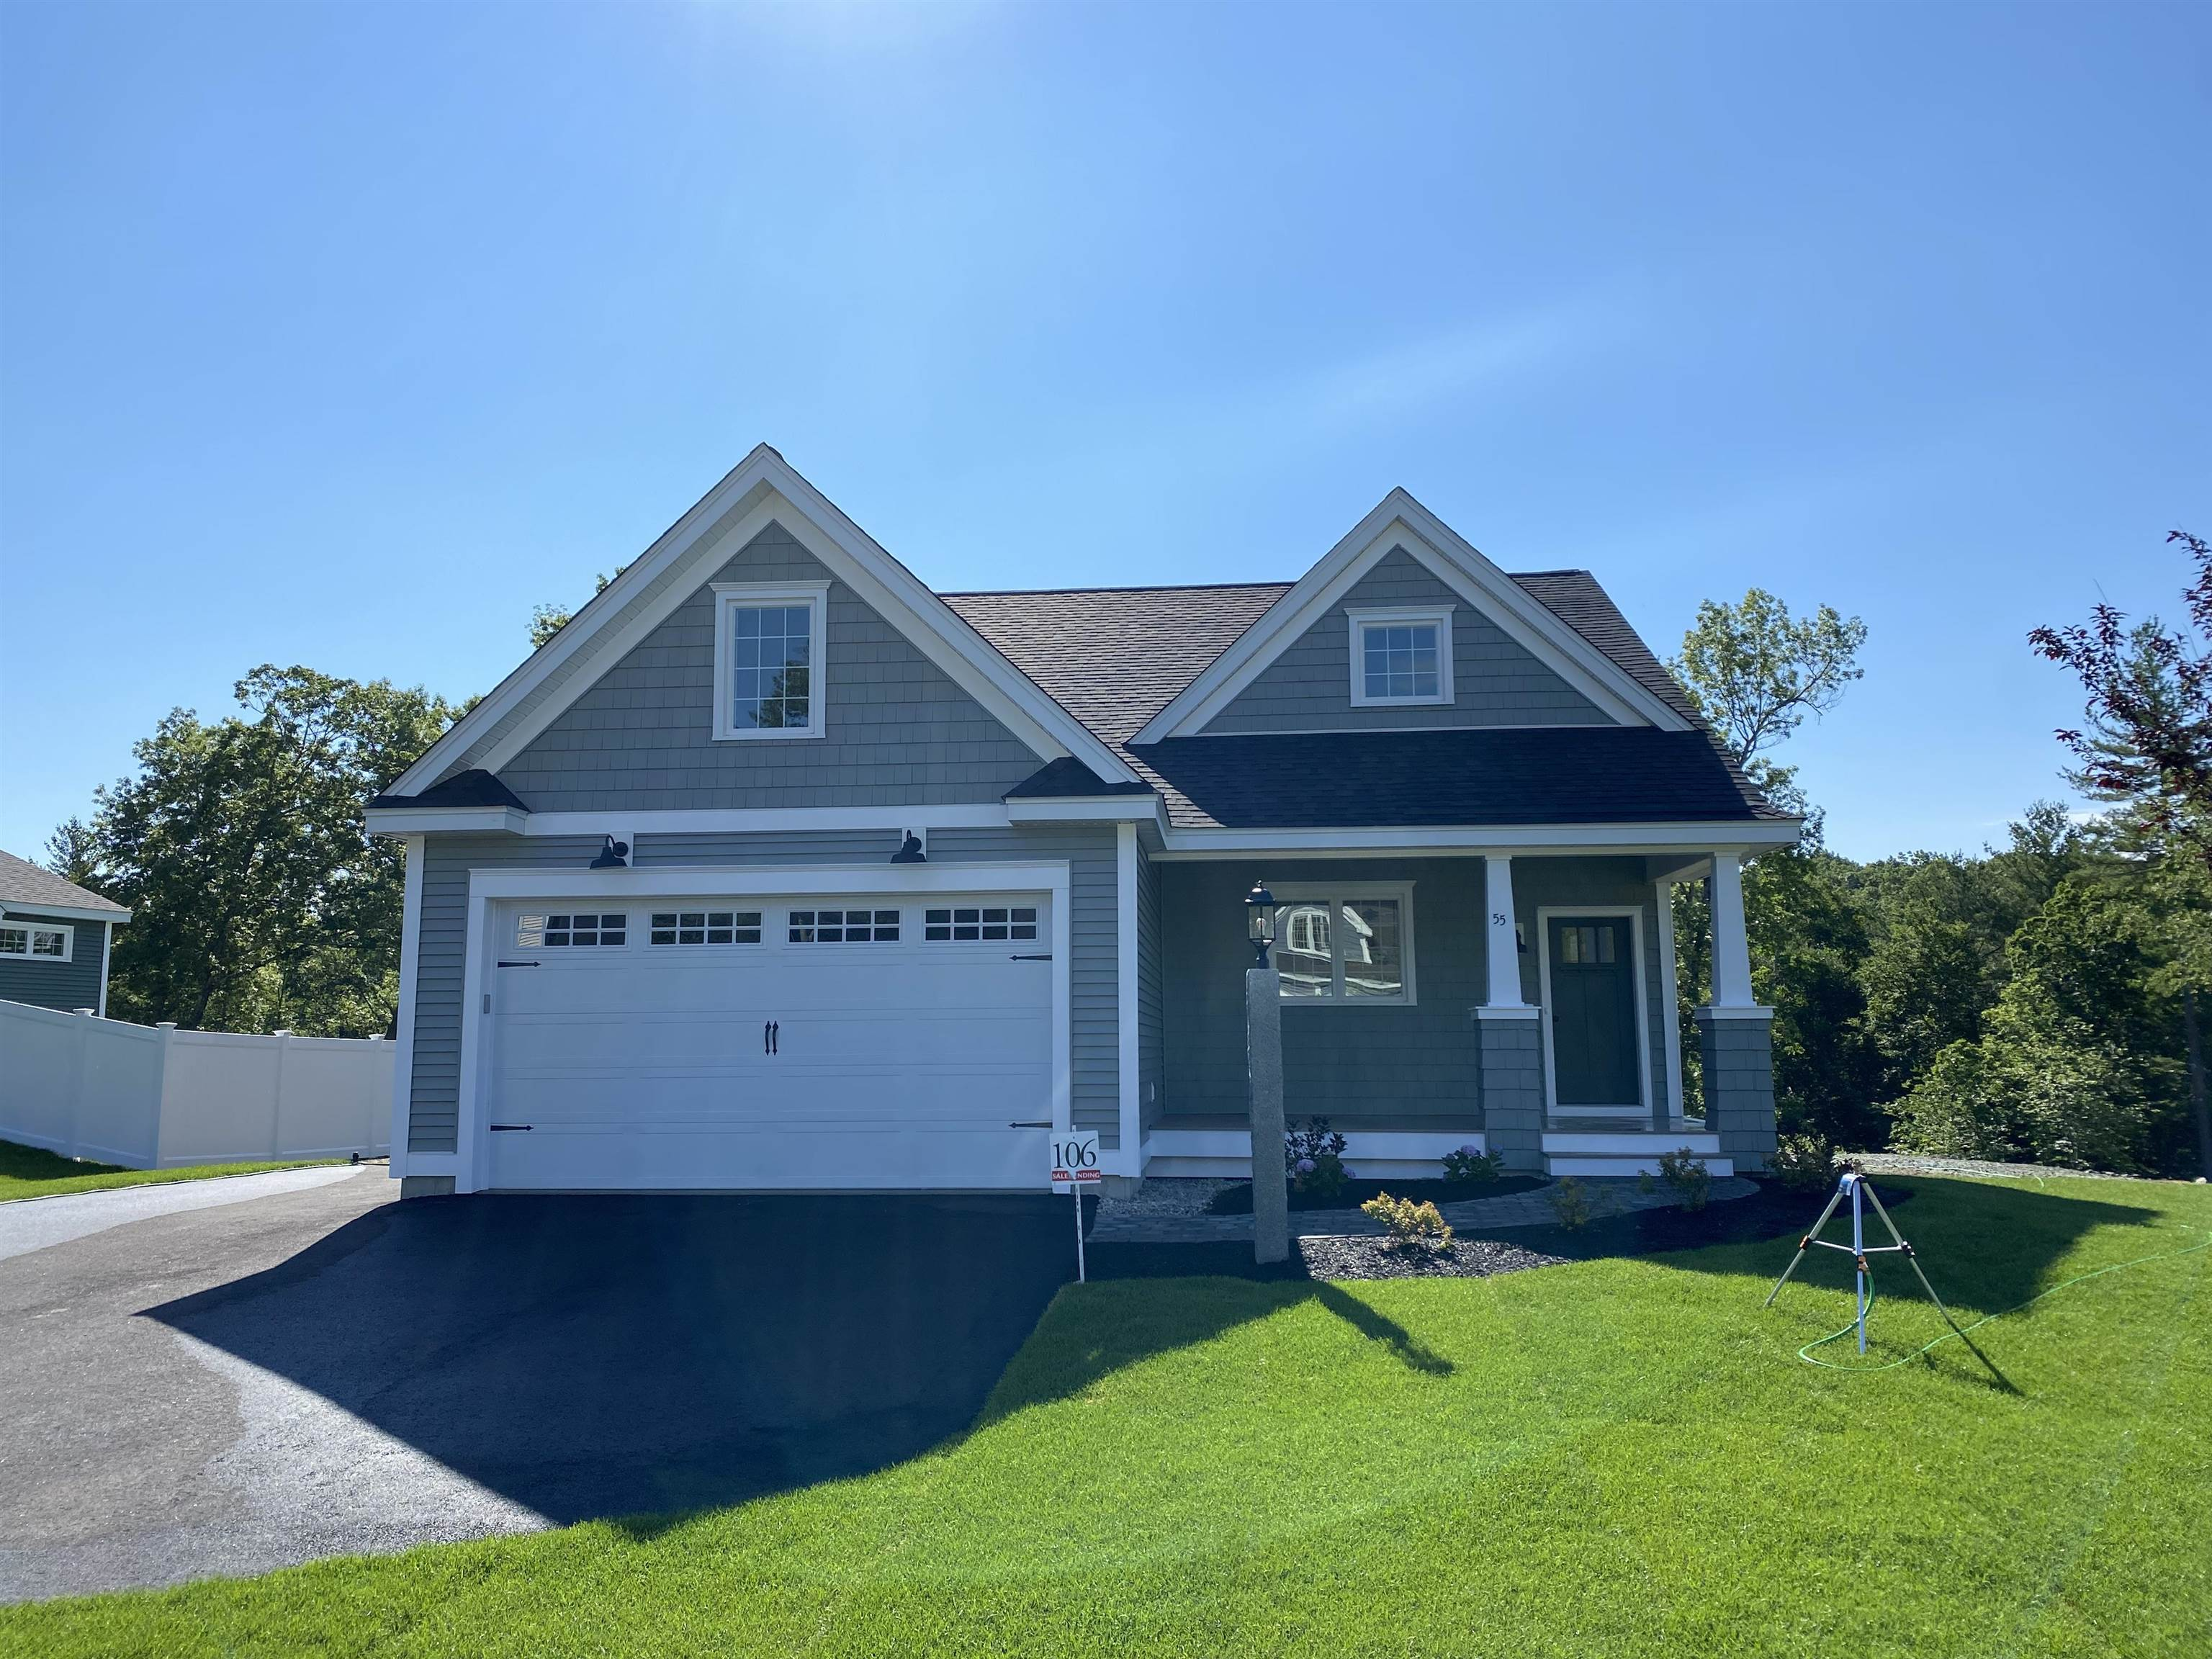 Photo of Lot 106 Lorden Commons Londonderry NH 03053